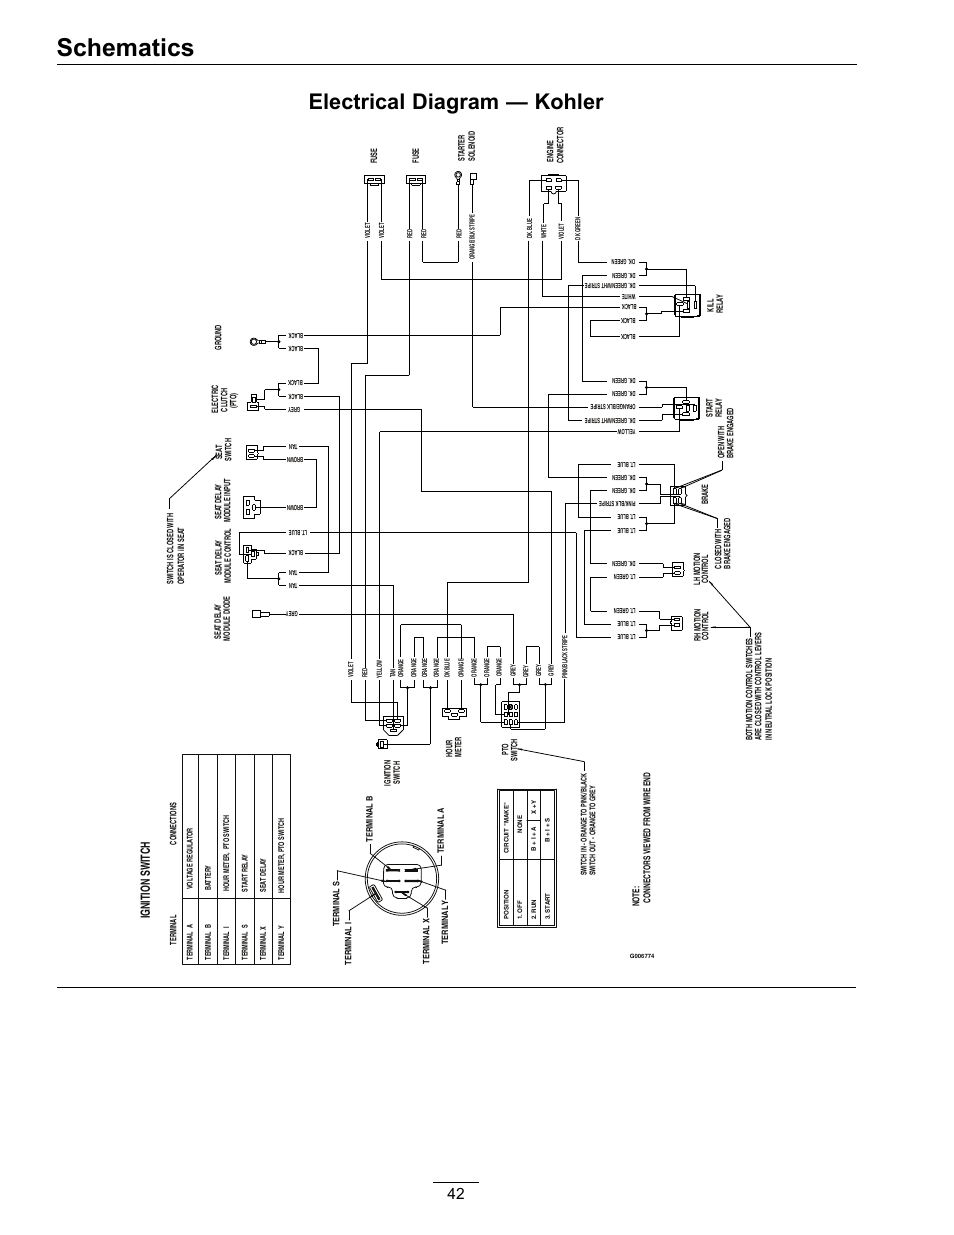 Schematics Electrical Diagram Kohler Ignition Switch Exmark Yamaha Hour Meter Wiring Lazer Z Hp 565 User Manual Page 42 48